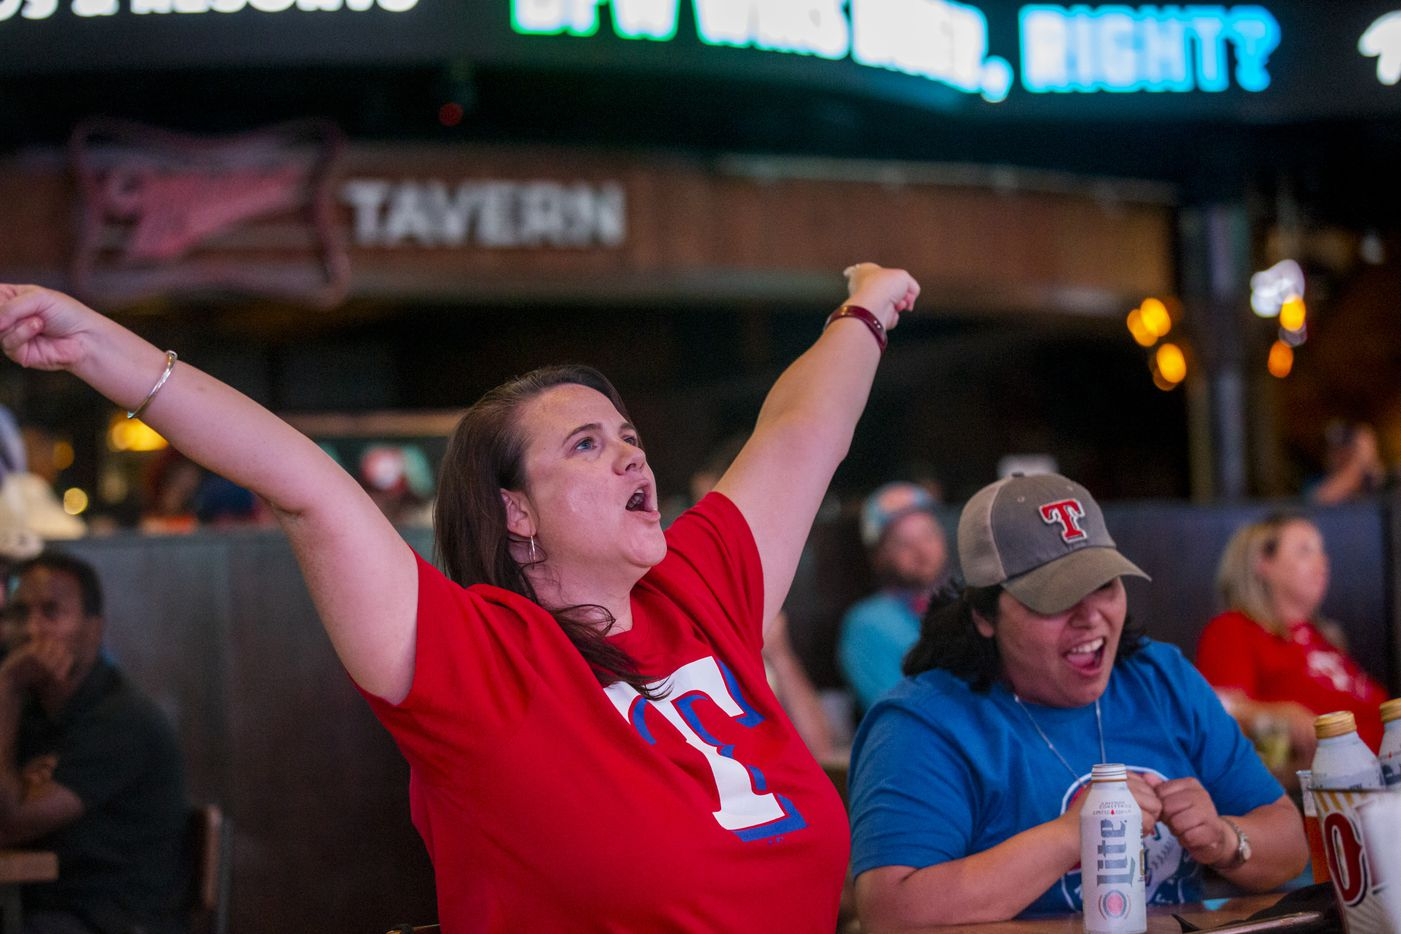 From left, Christen Rogoski, from Dallas and Christi Mava, from Strawn, Texas, cheer with fans as the Texas Rangers near their win during the opening day game of their season at Texas Live! in Arlington, Texas, on Friday, July 24, 2020. The Rangers beat the Colorado Rockies 1-0 at the new Globe Life Field stadium, but fans had to watch on televised screens outside due to the ongoing pandemic. (Lynda M. Gonzalez/The Dallas Morning News)